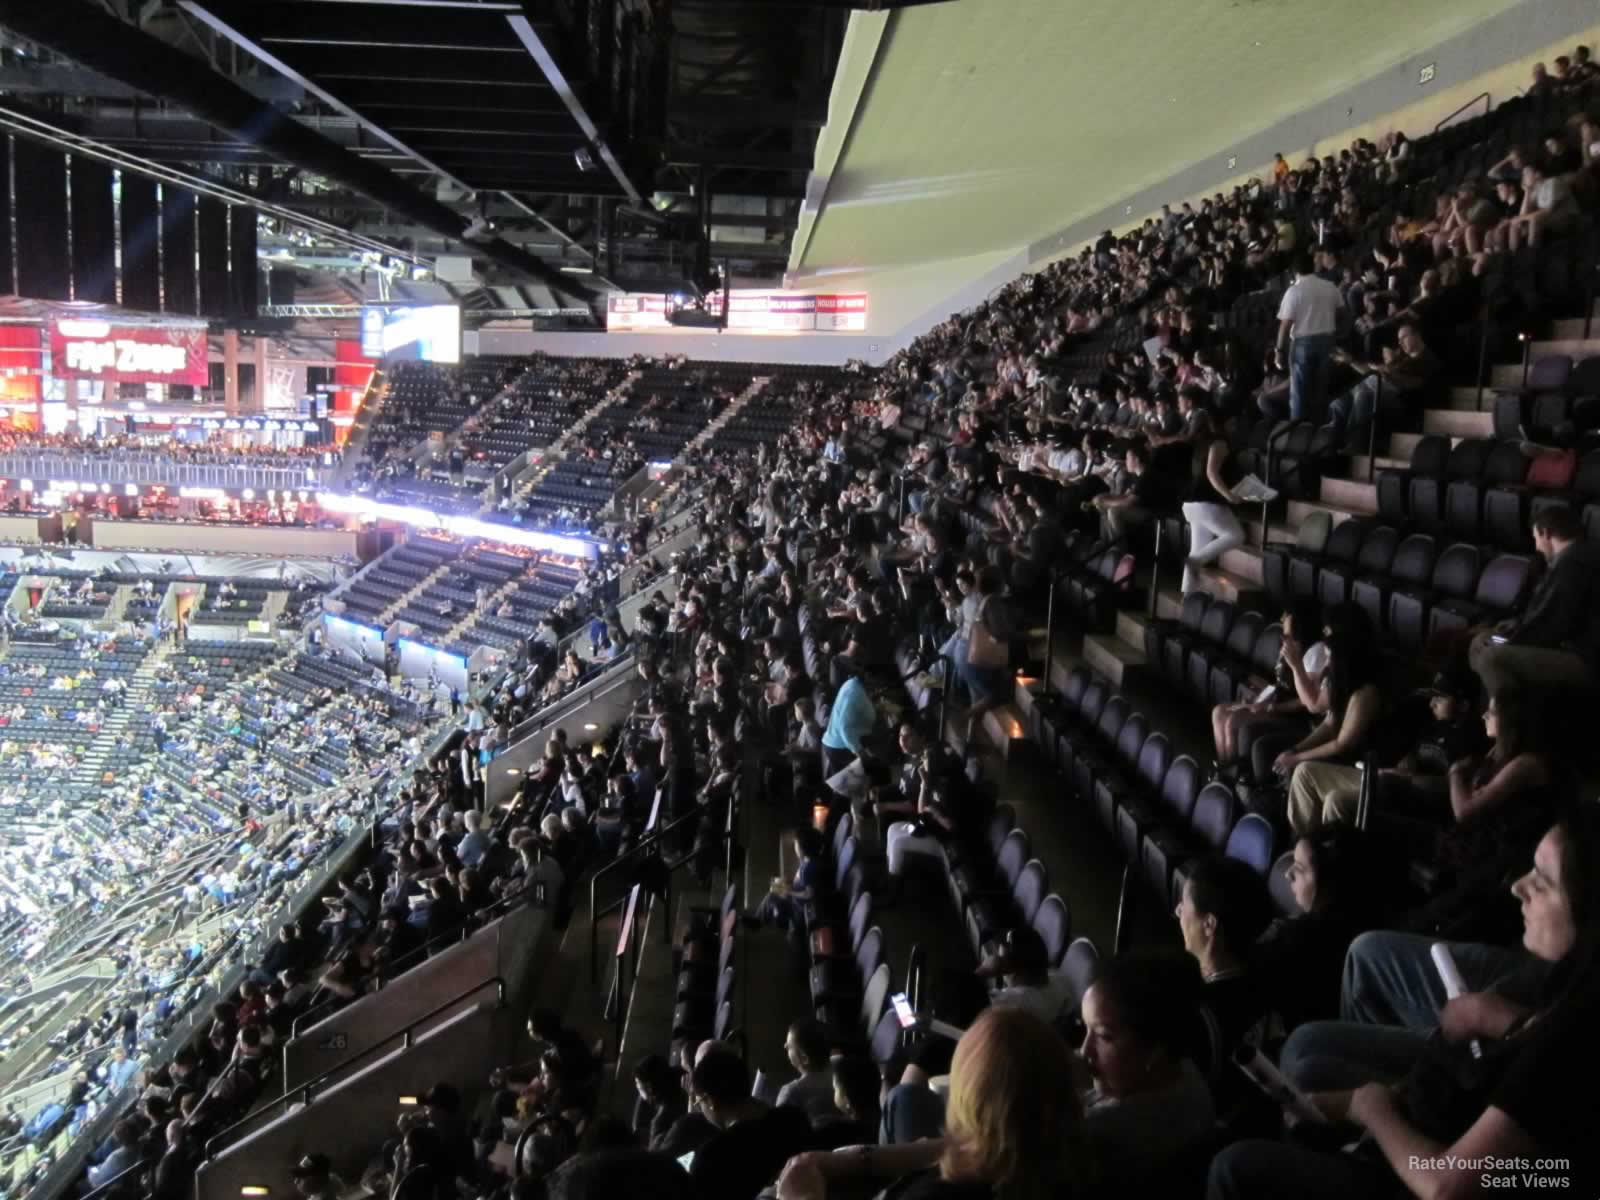 Sideline Sections 222-226 at the AT&T Center